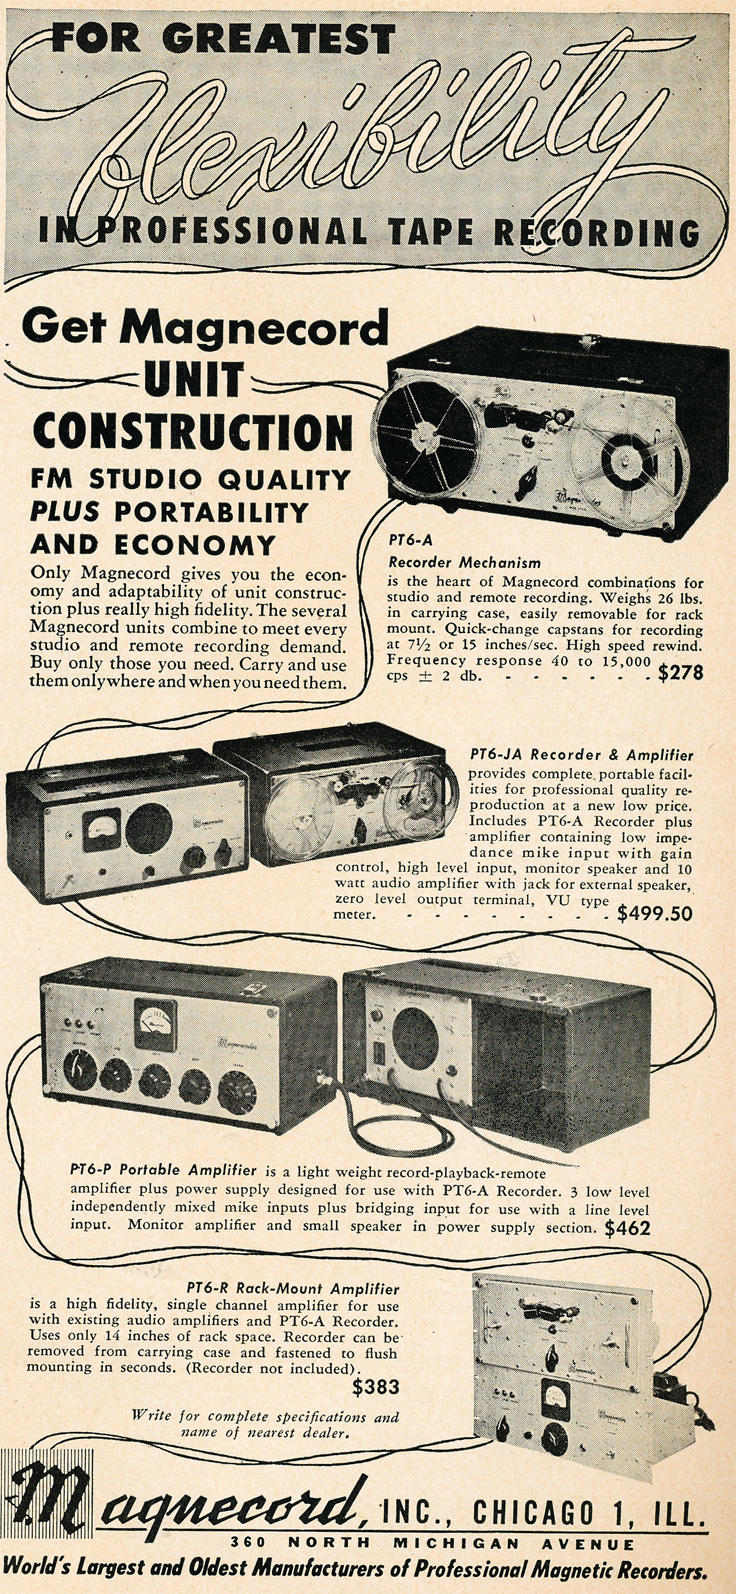 1949 ad for the Magnecord professional reel to reel tape recorders